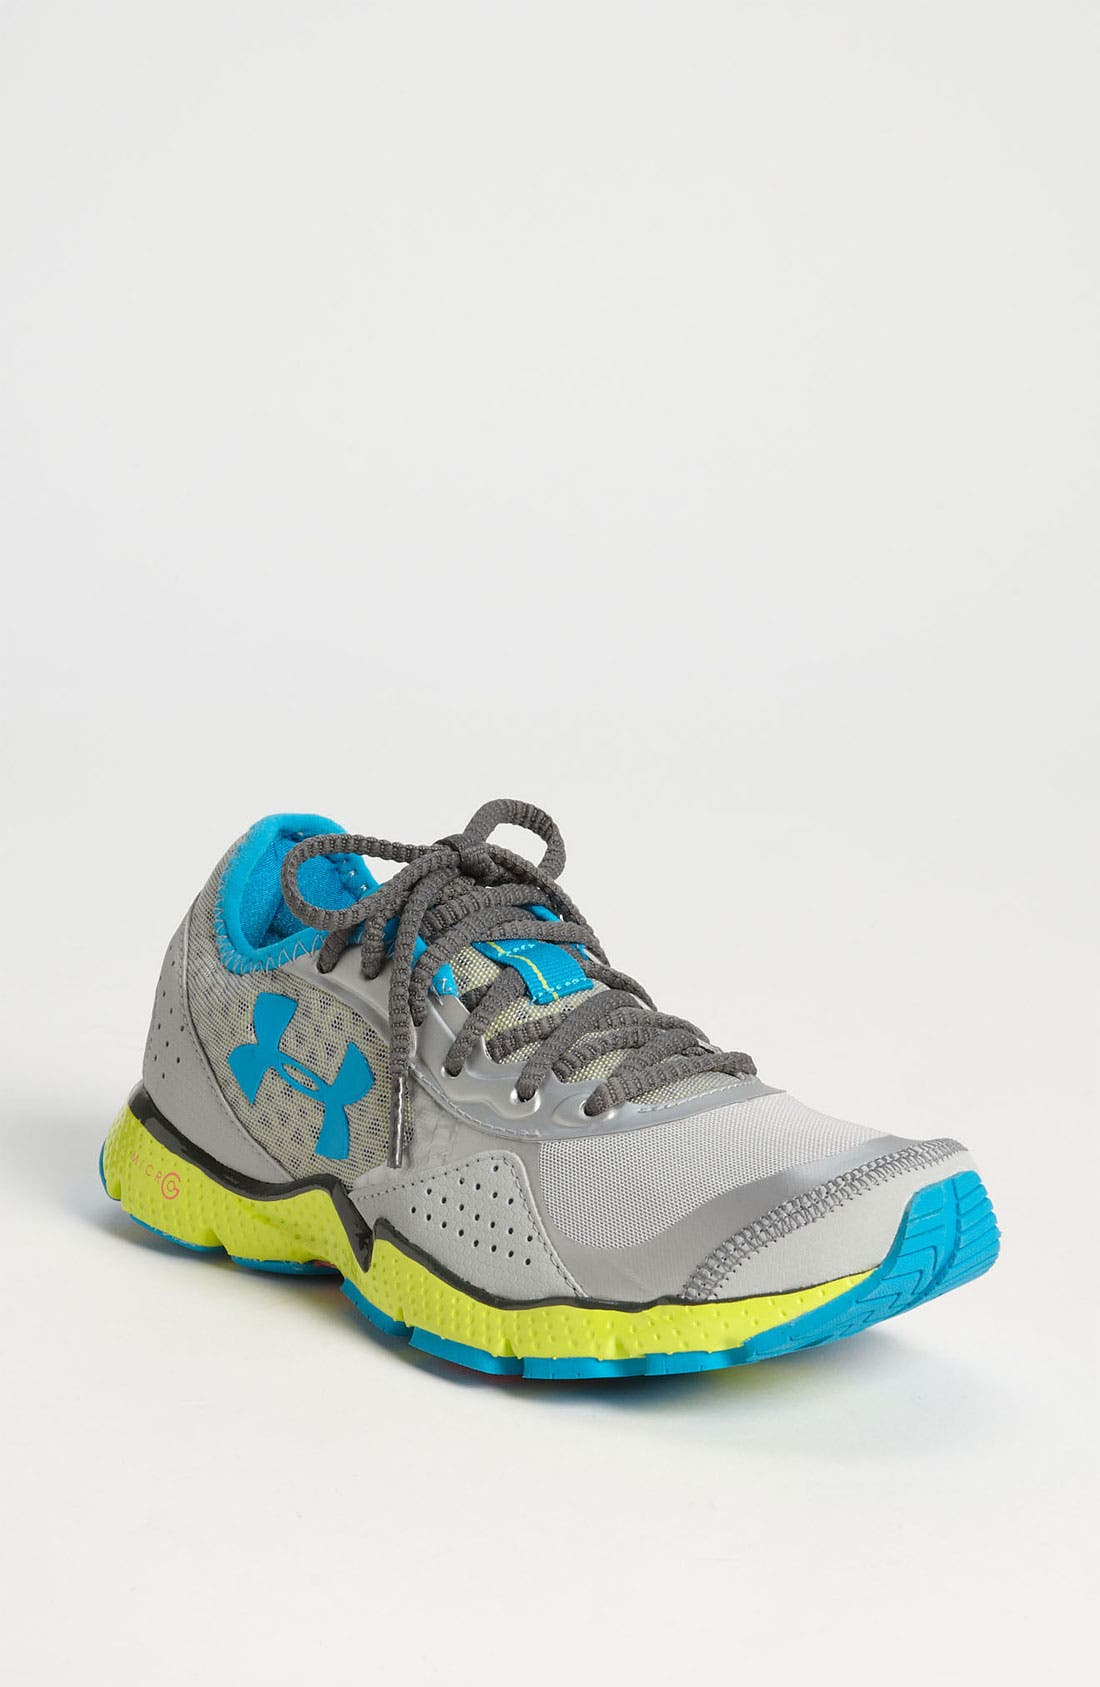 Main Image - Under Armour 'Feather Shield' Running Shoe (Women)